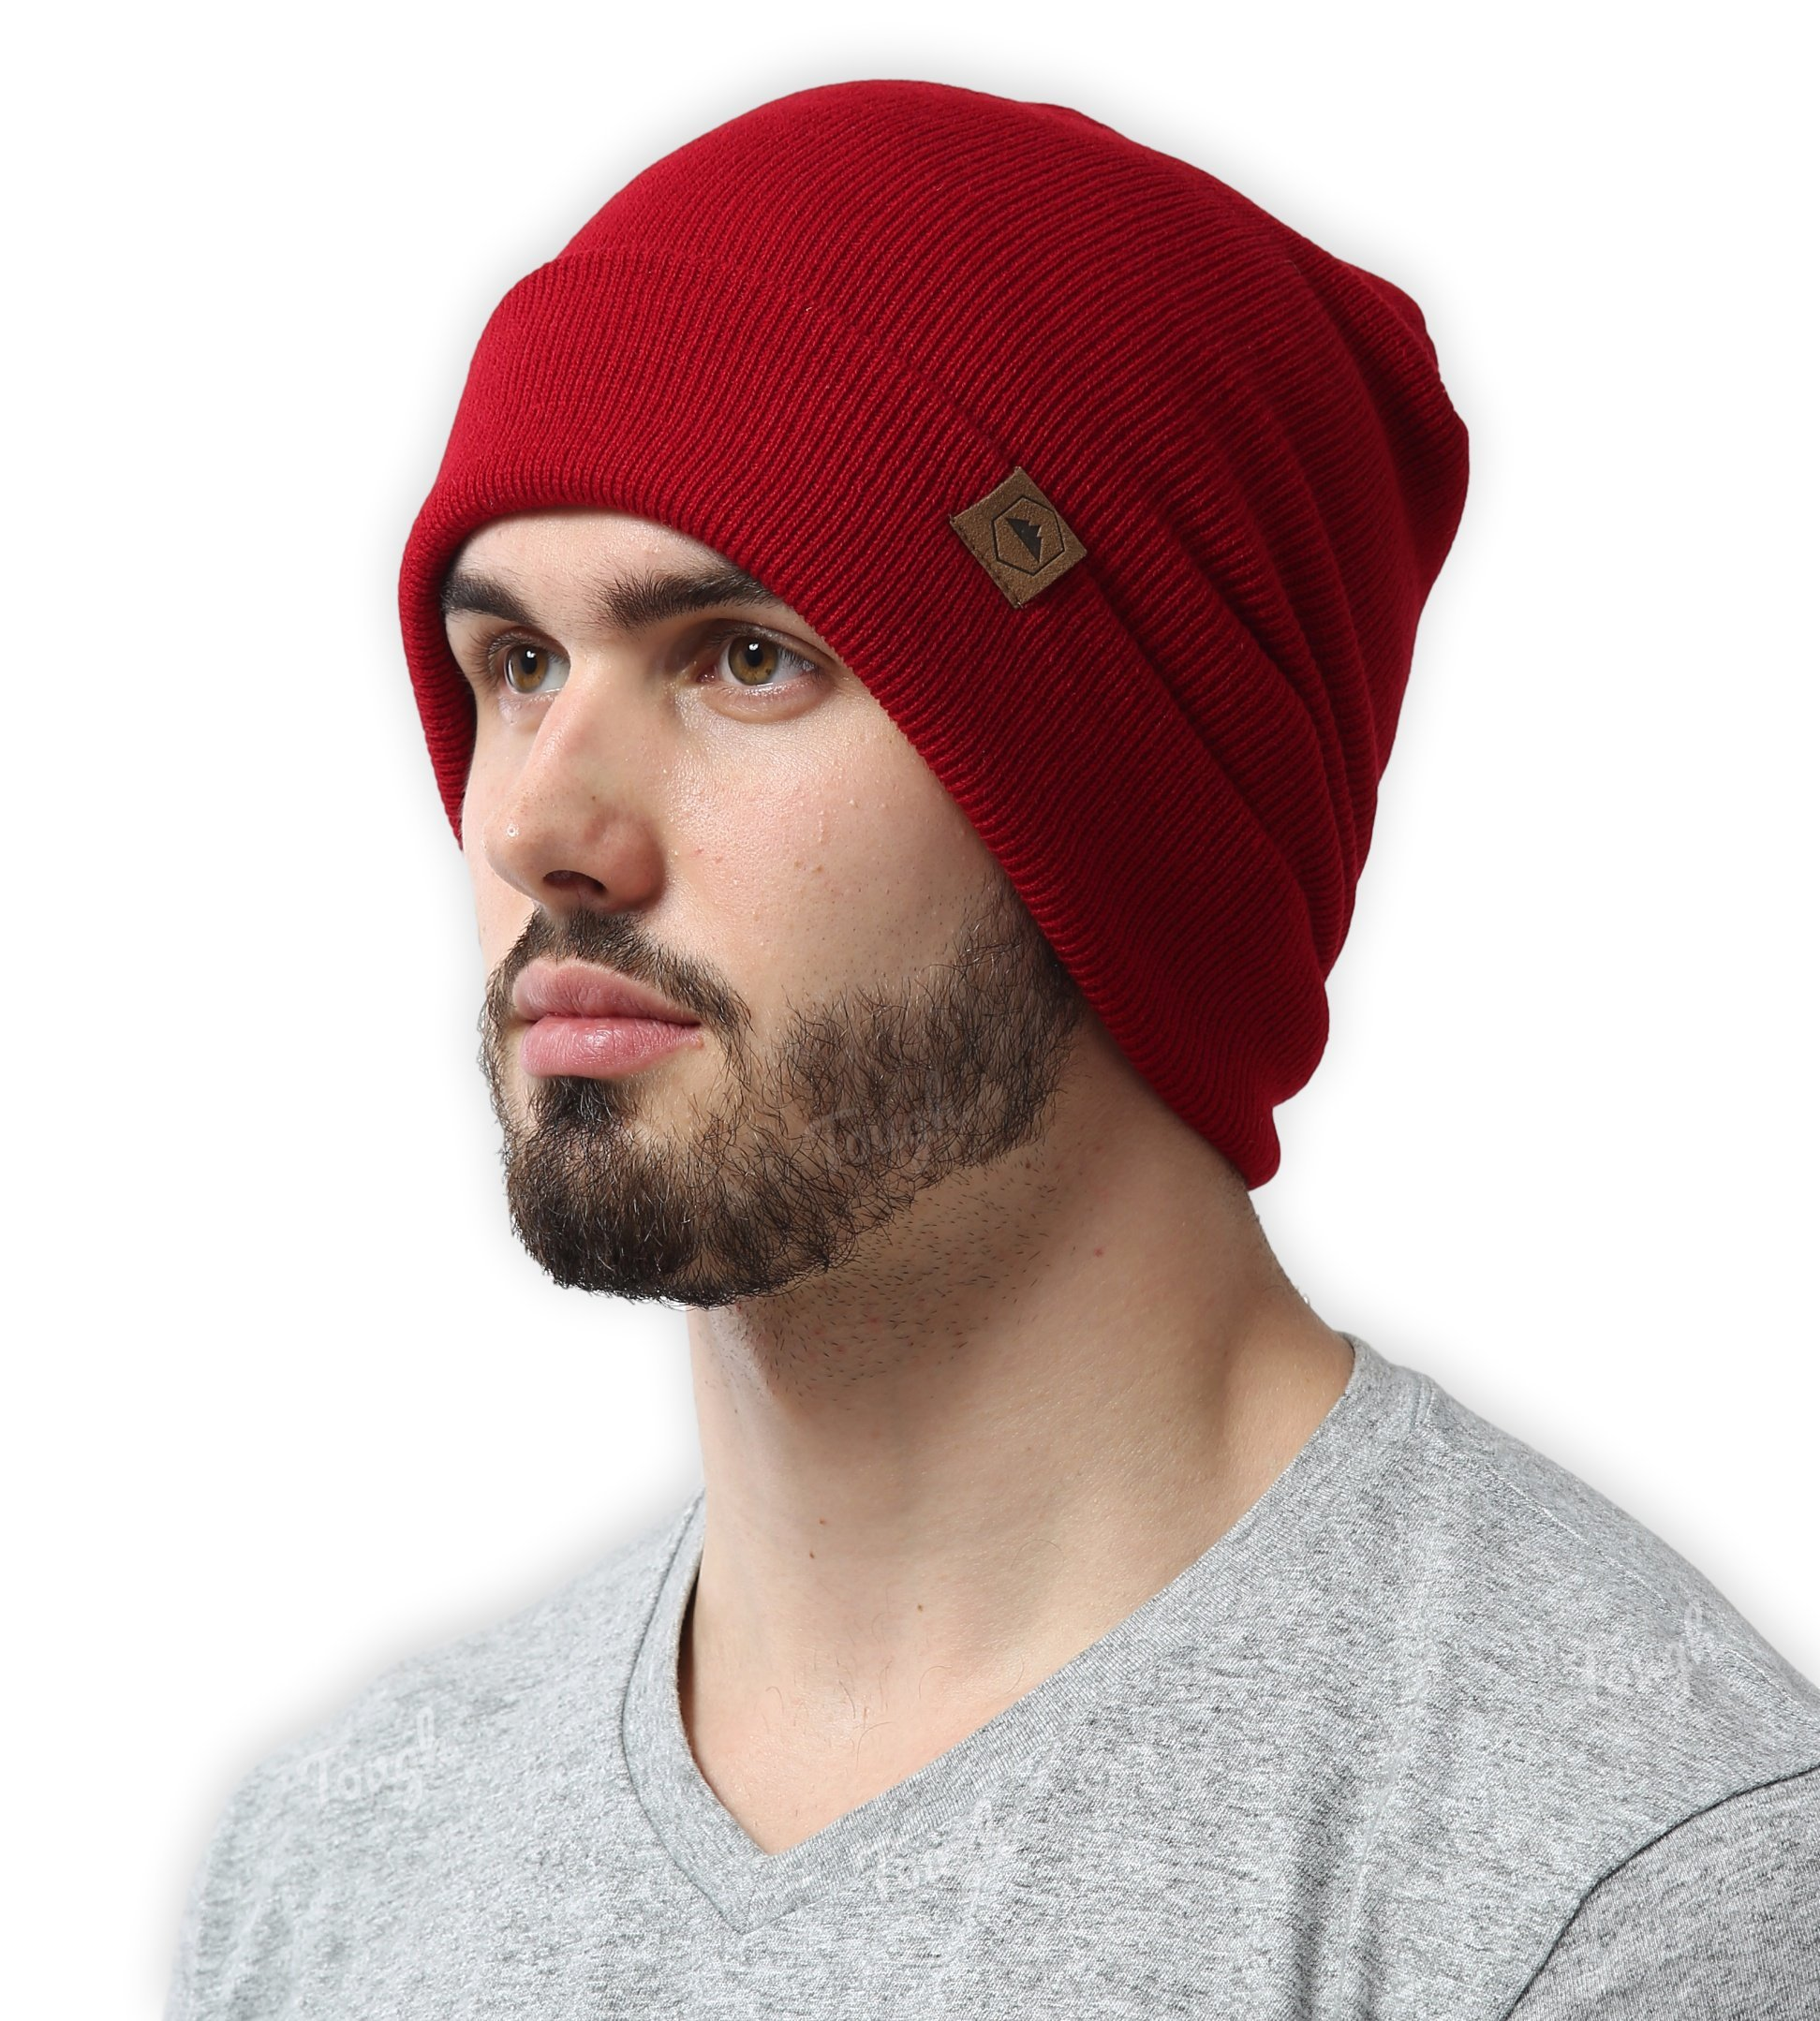 Tough Headwear Cuff Beanie Watch Cap - Warm, Stretchy & Soft Knit Hats for Men & Women - Serious Beanies for Serious Style